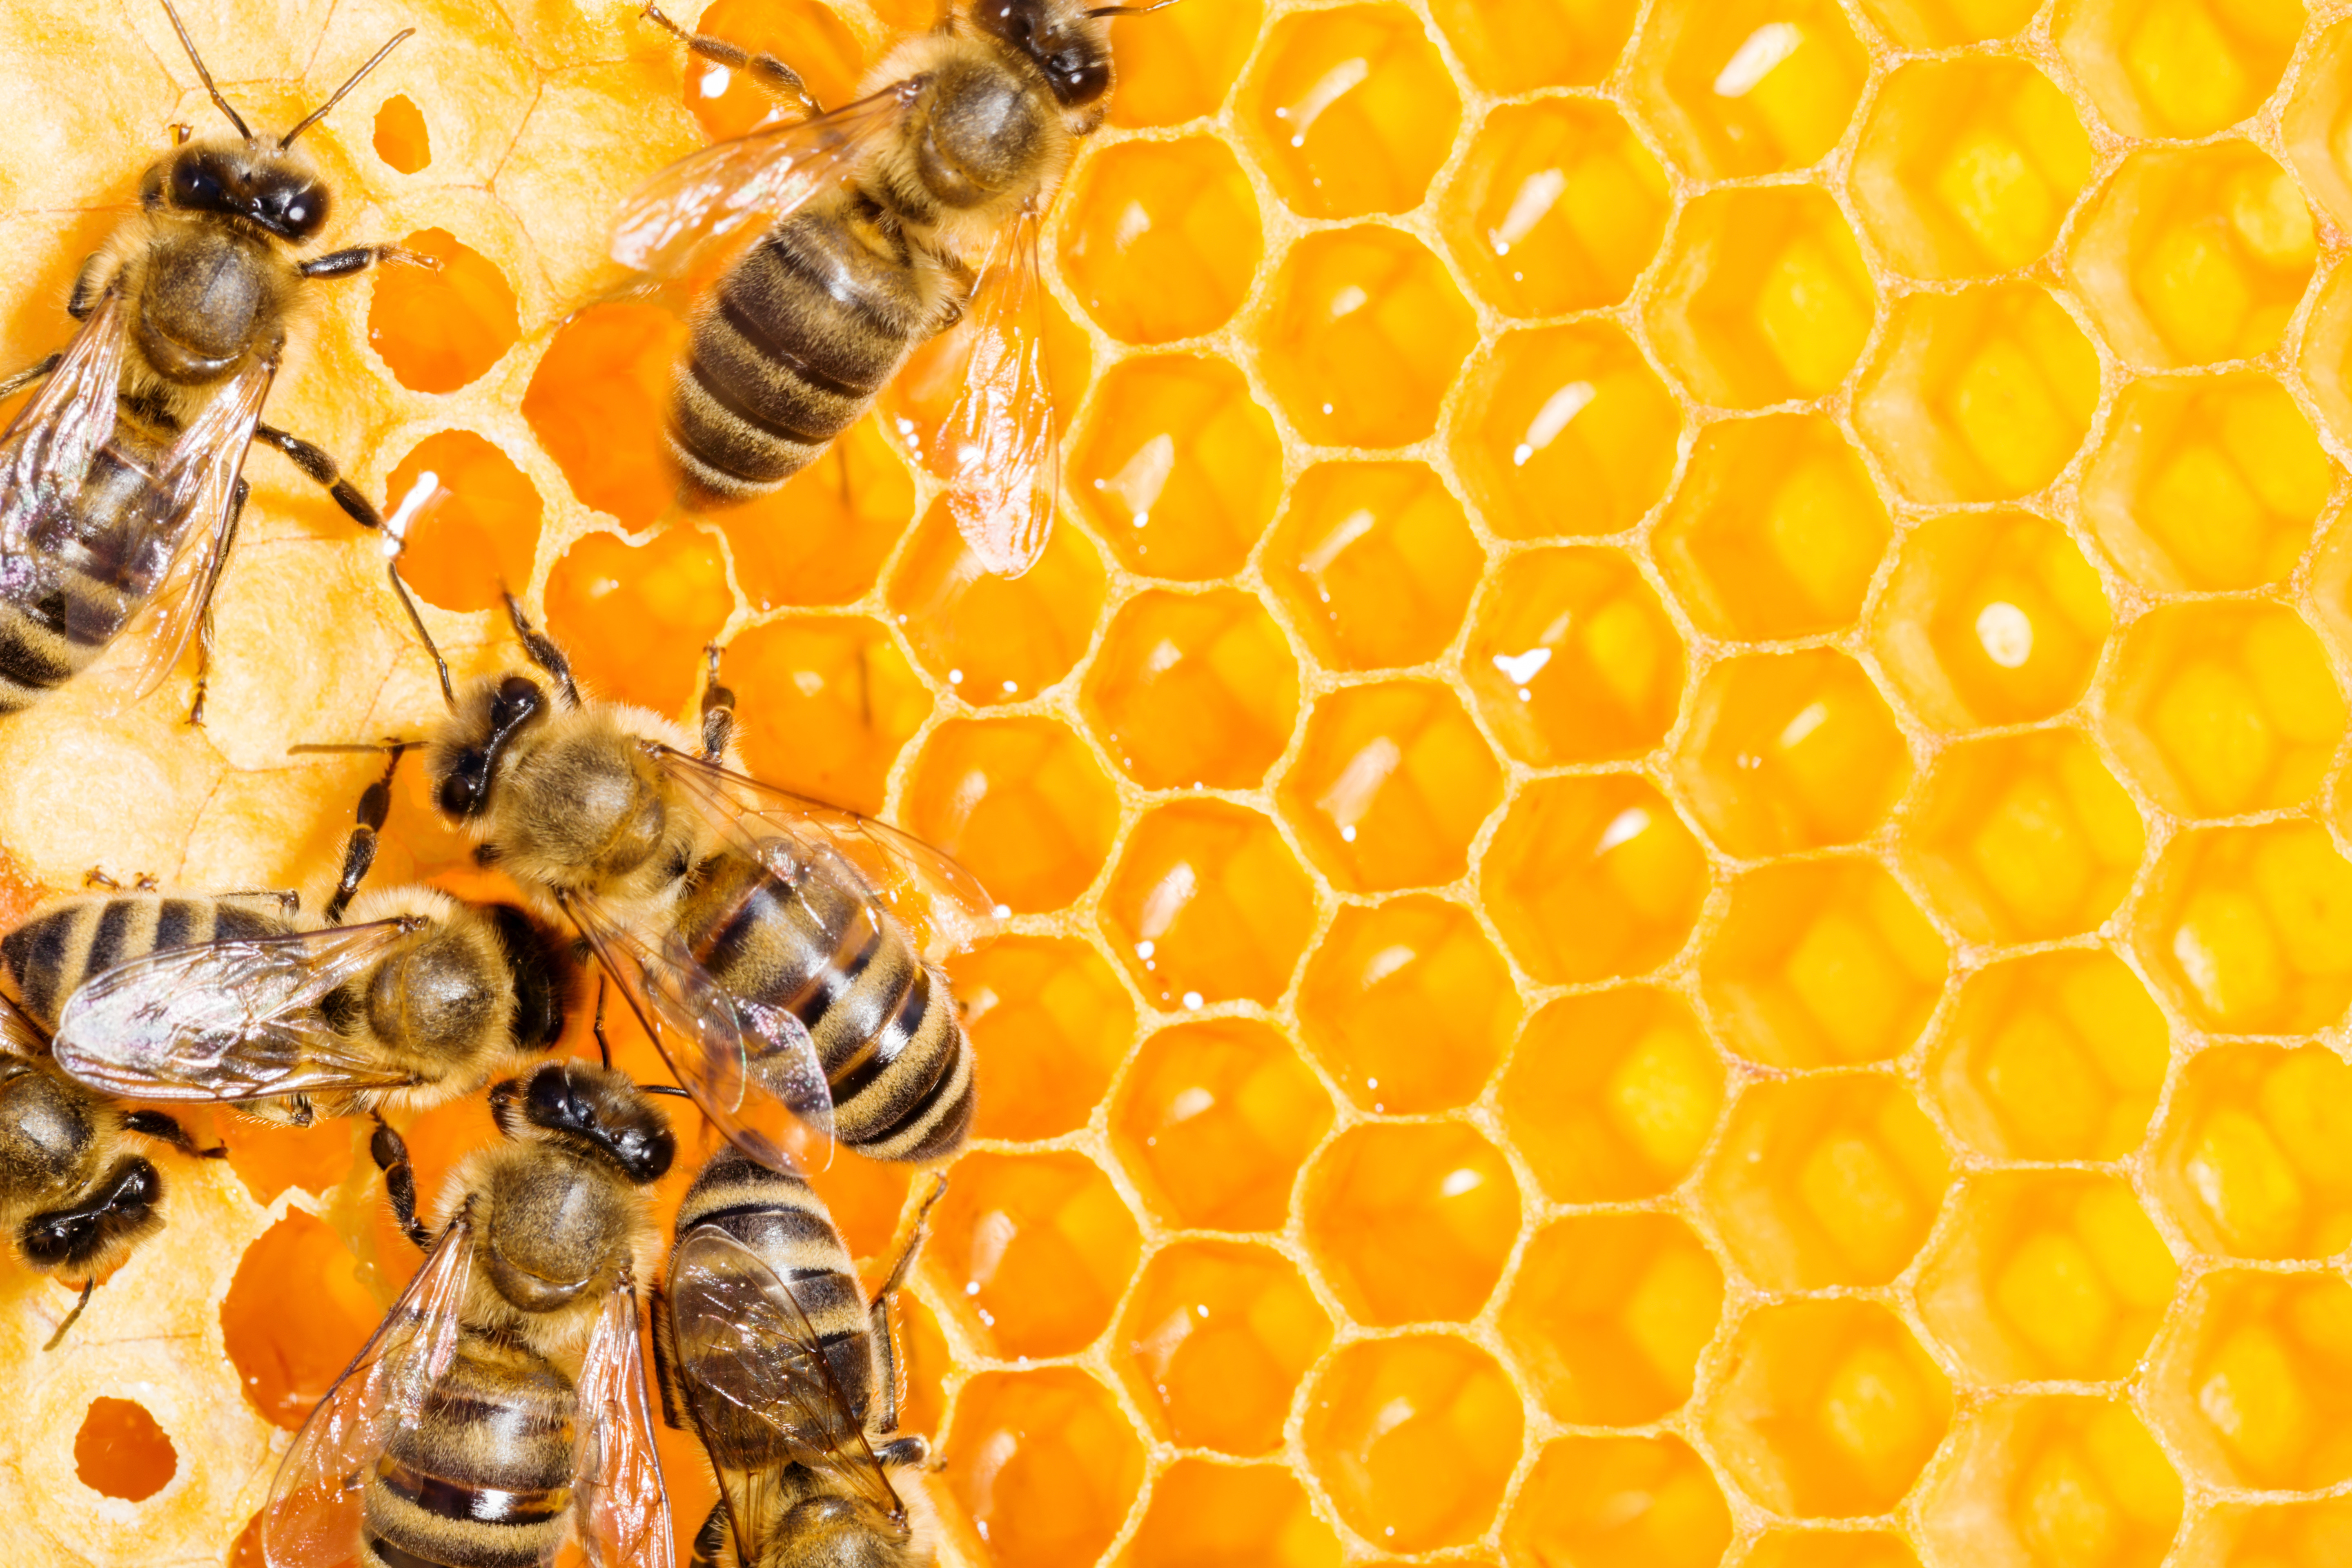 Article image for 'It's a lie!': Honey producers irate over New Zealand's bid to stop Australian beekeepers from using term 'manuka'